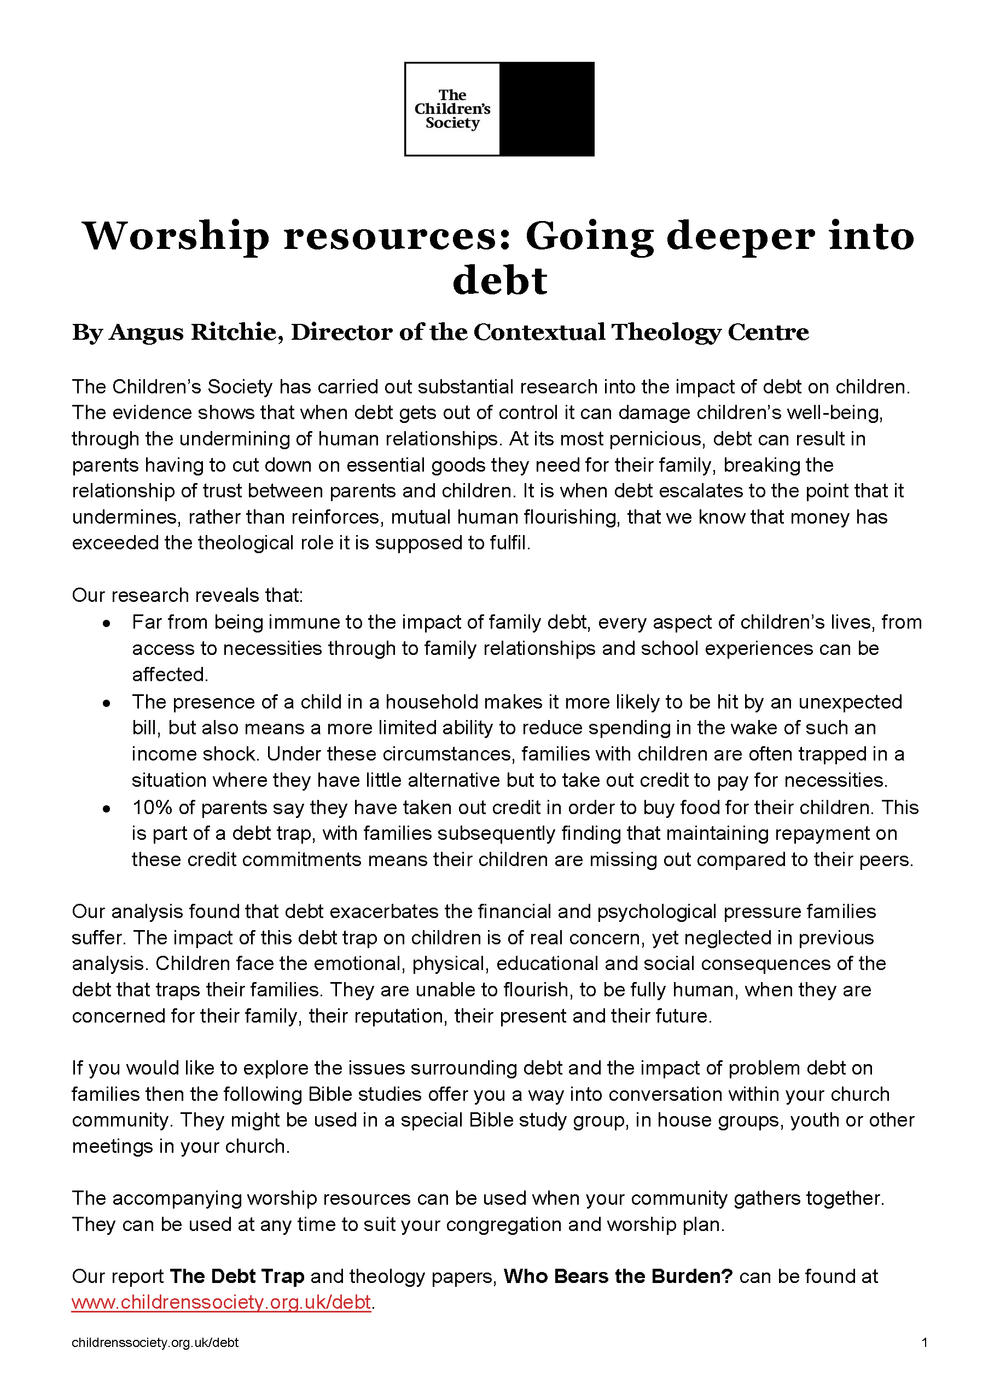 Deeper into Debt - Bible Studies and Worship Materials based on research from The Children's Society exploring the impact of debt on children Download PDF (180kb)